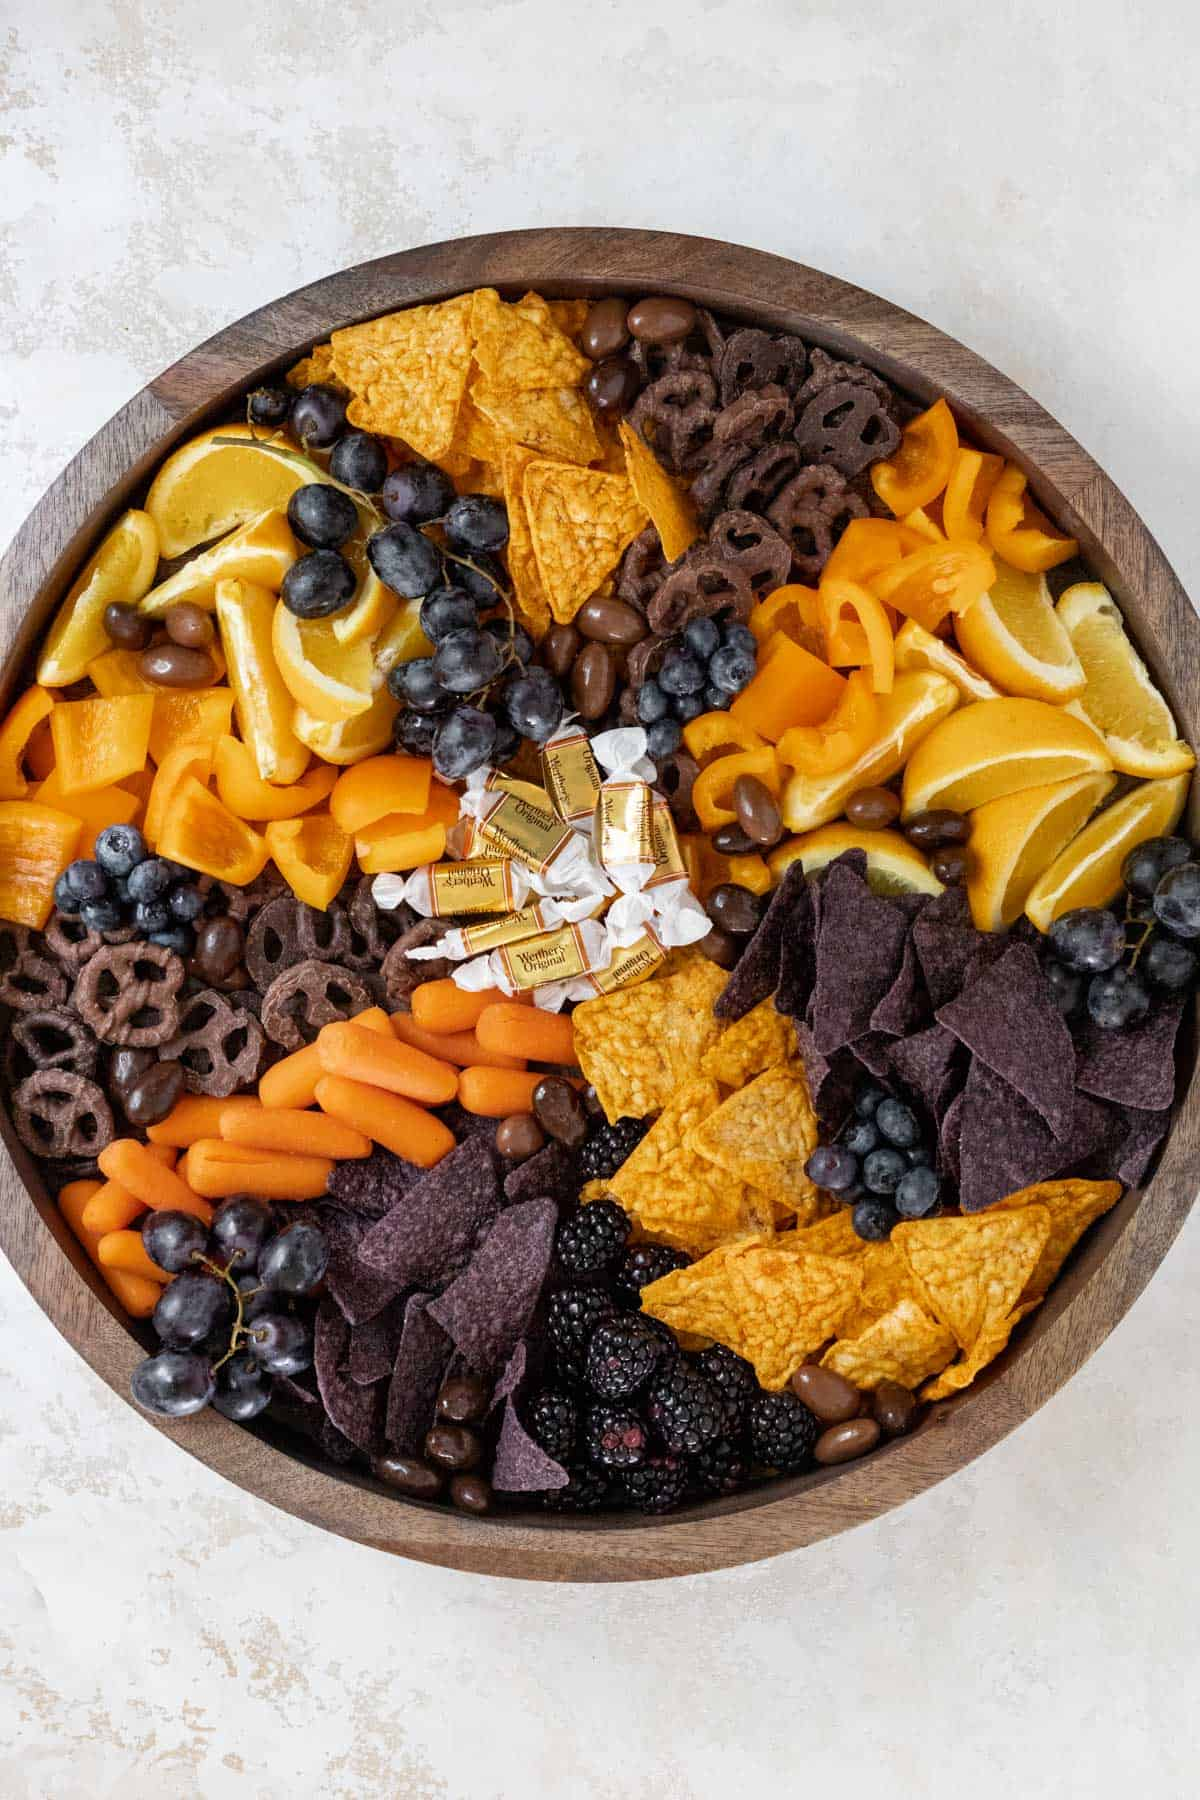 Oranges, chips, orange bell peppers, and chocolate covered pretzels, carrots, caramels, blueberries, blackberries, and chocolate almonds arranged on a wooden board.